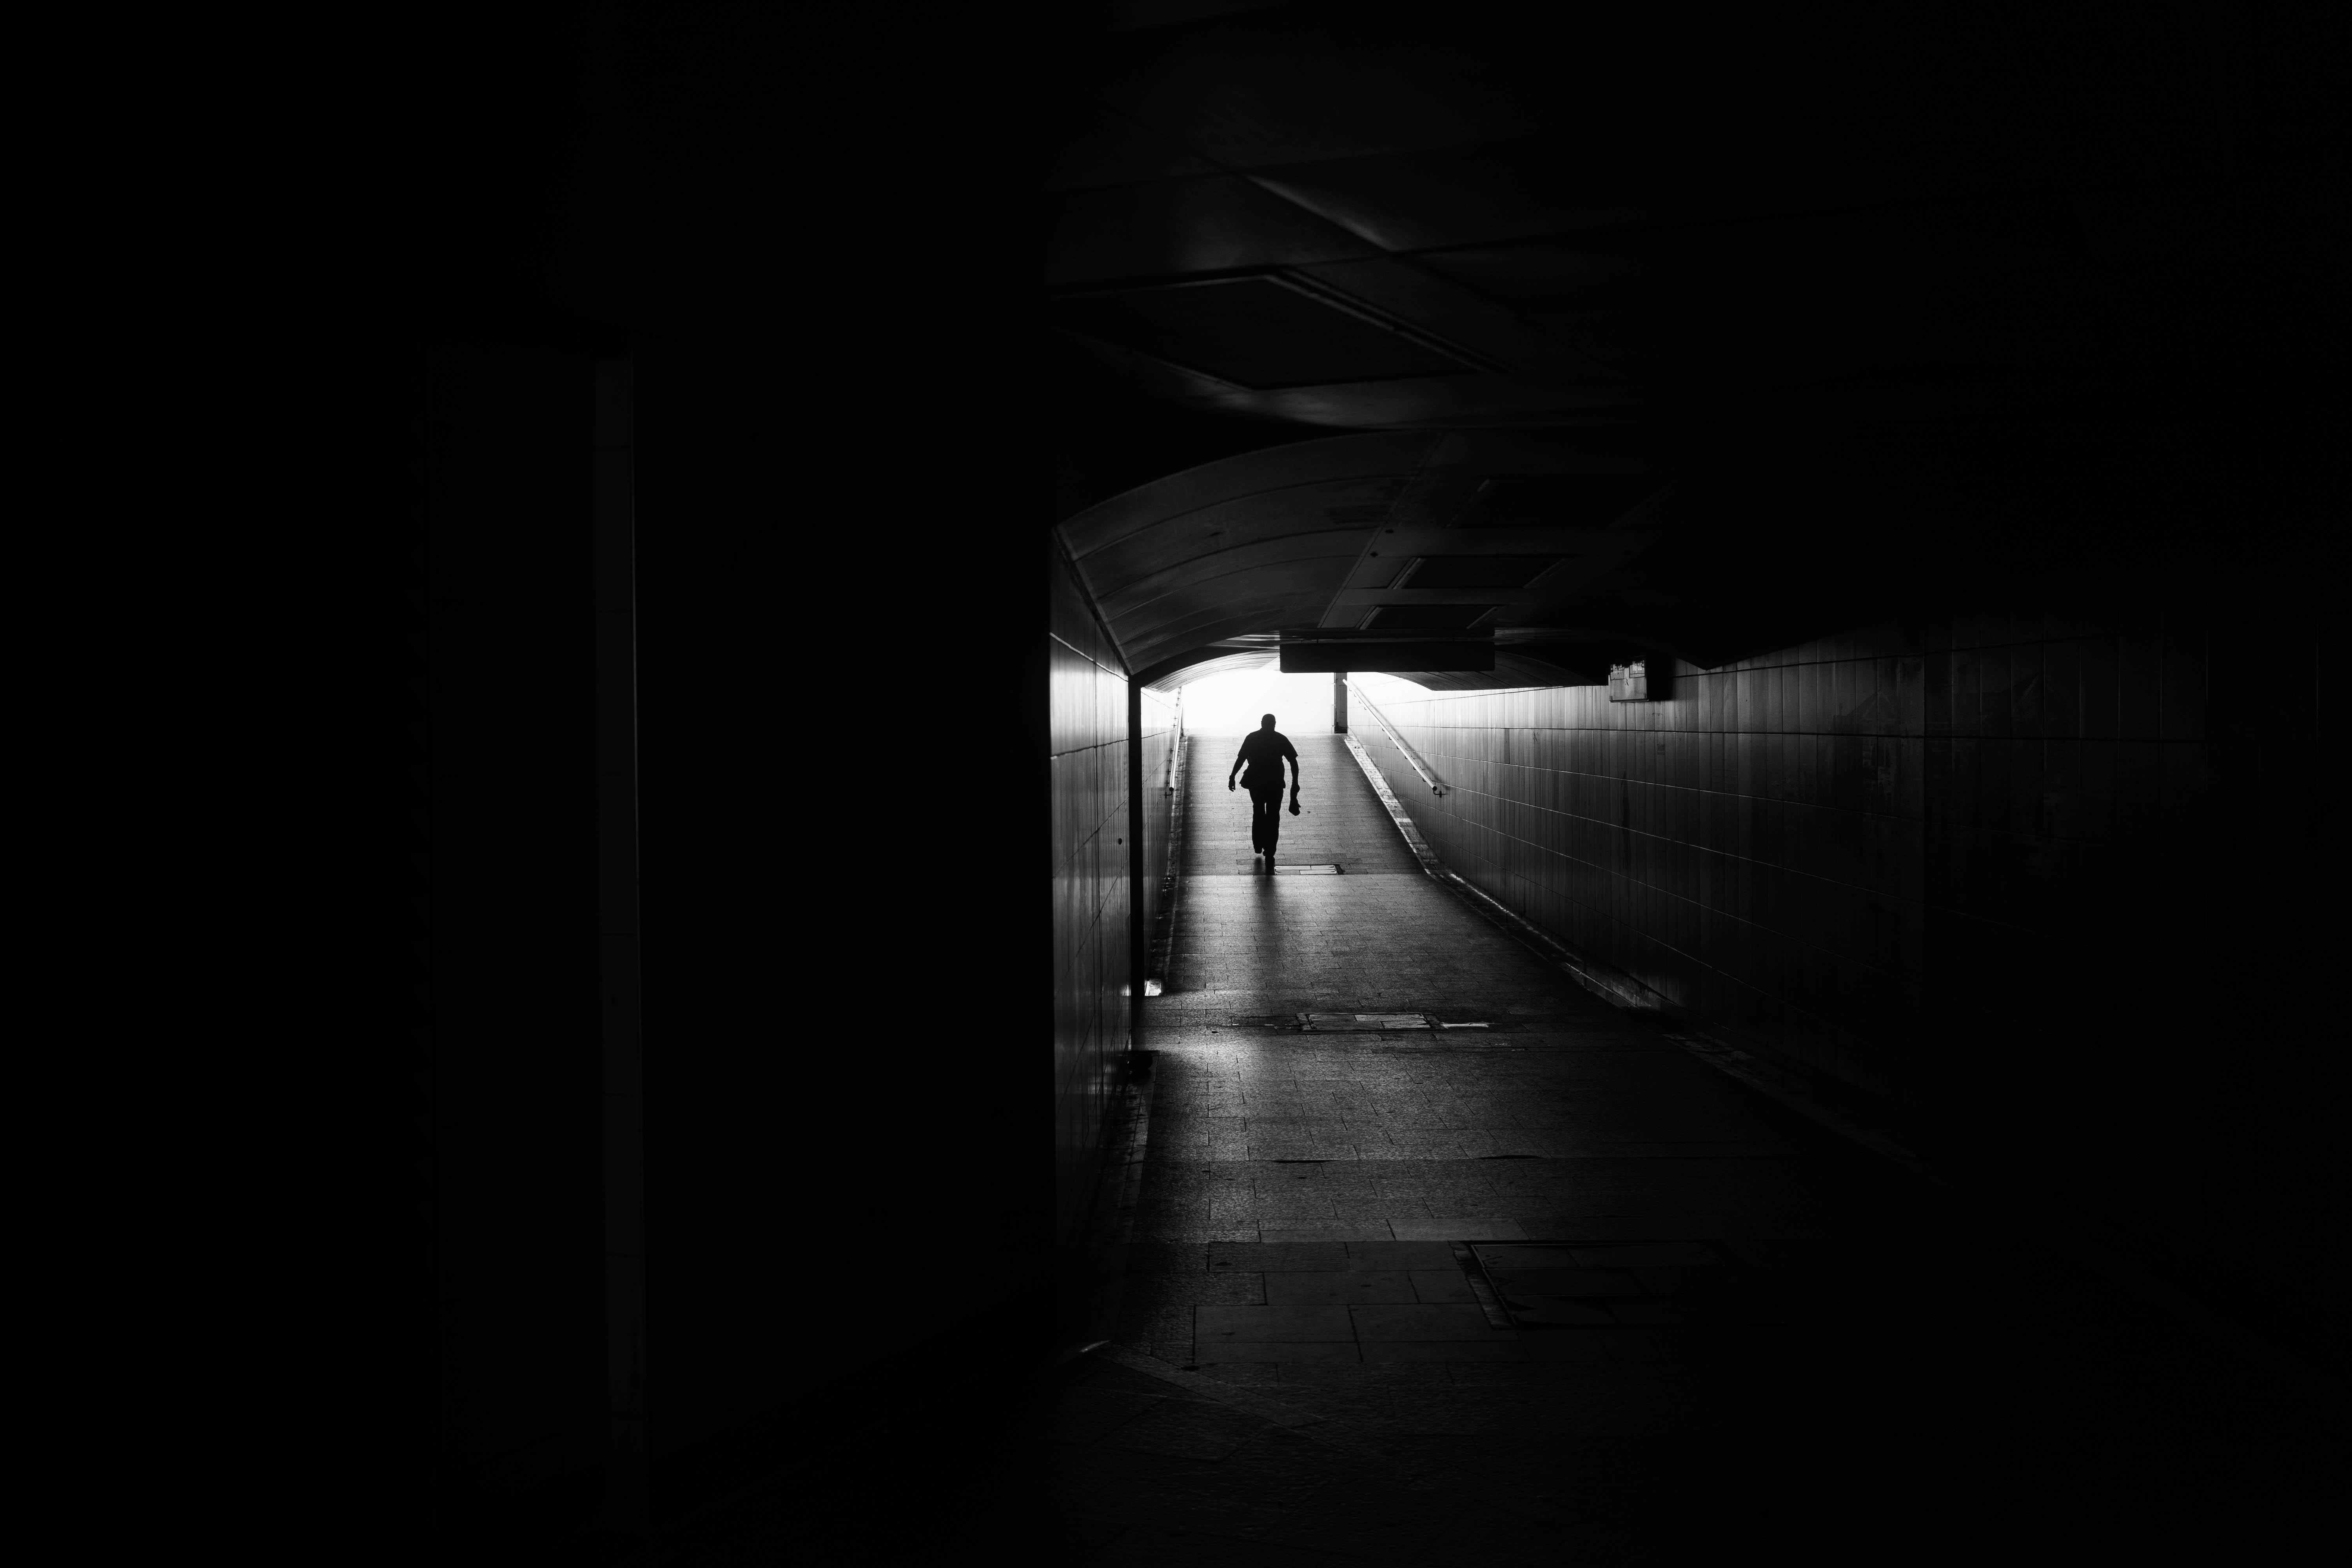 person walking in subway